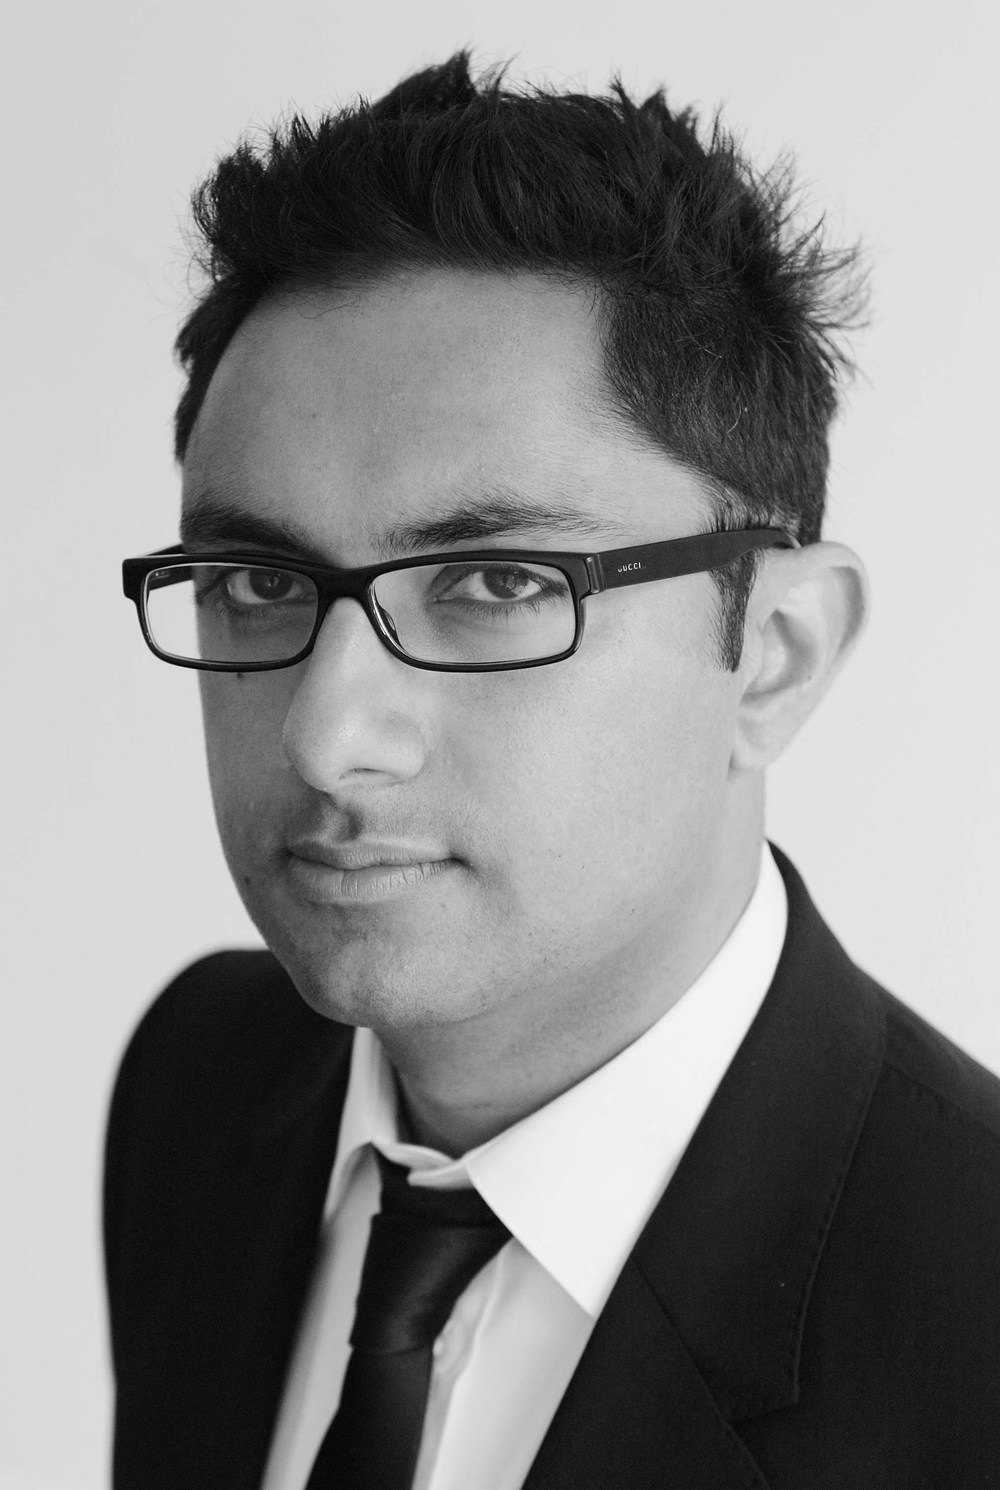 Our special guest at this year's Presentation Evening was wolverhampton-born journalist and author, Sathnam Sanghera